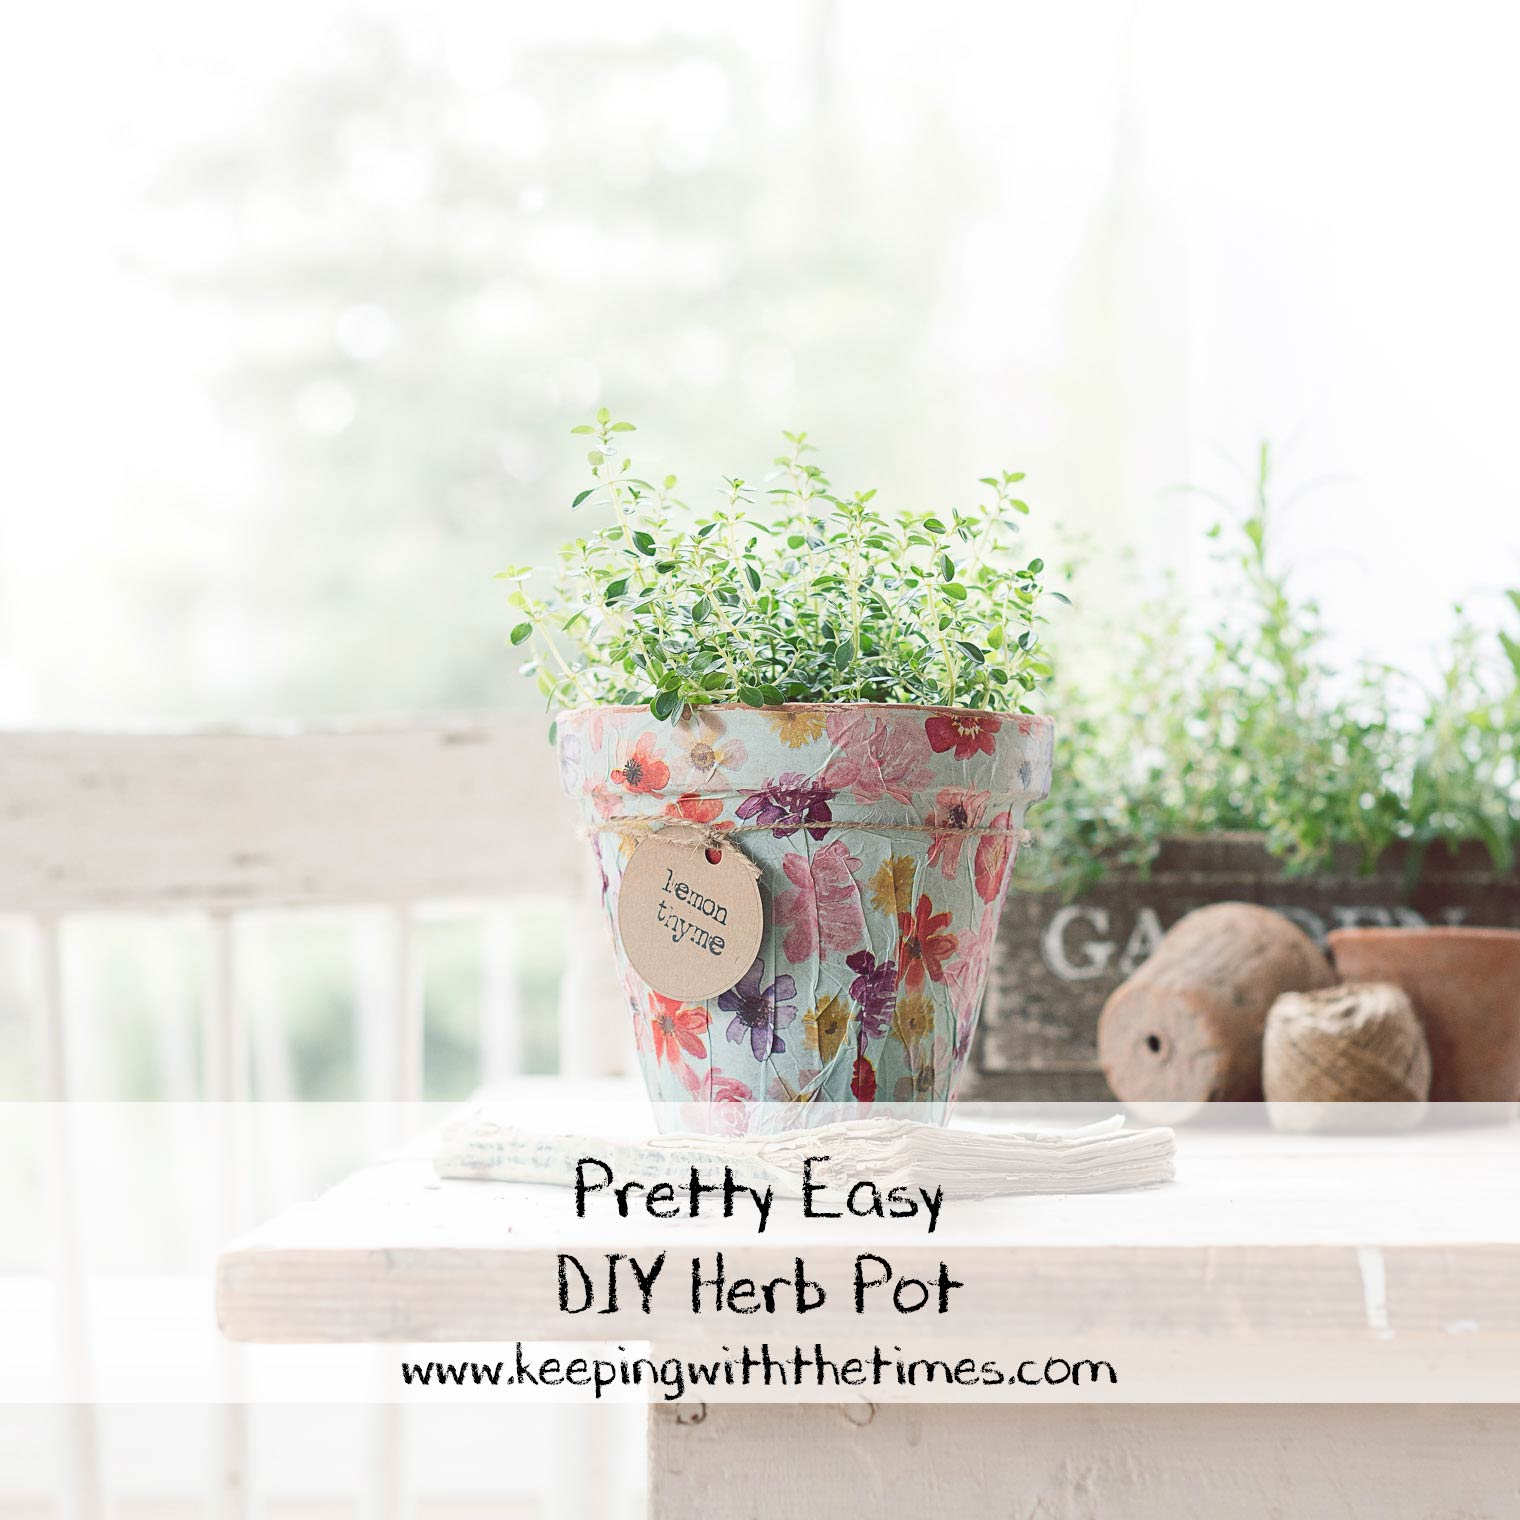 Pretty Easy DIY Herb Pot, Keeping With the Times